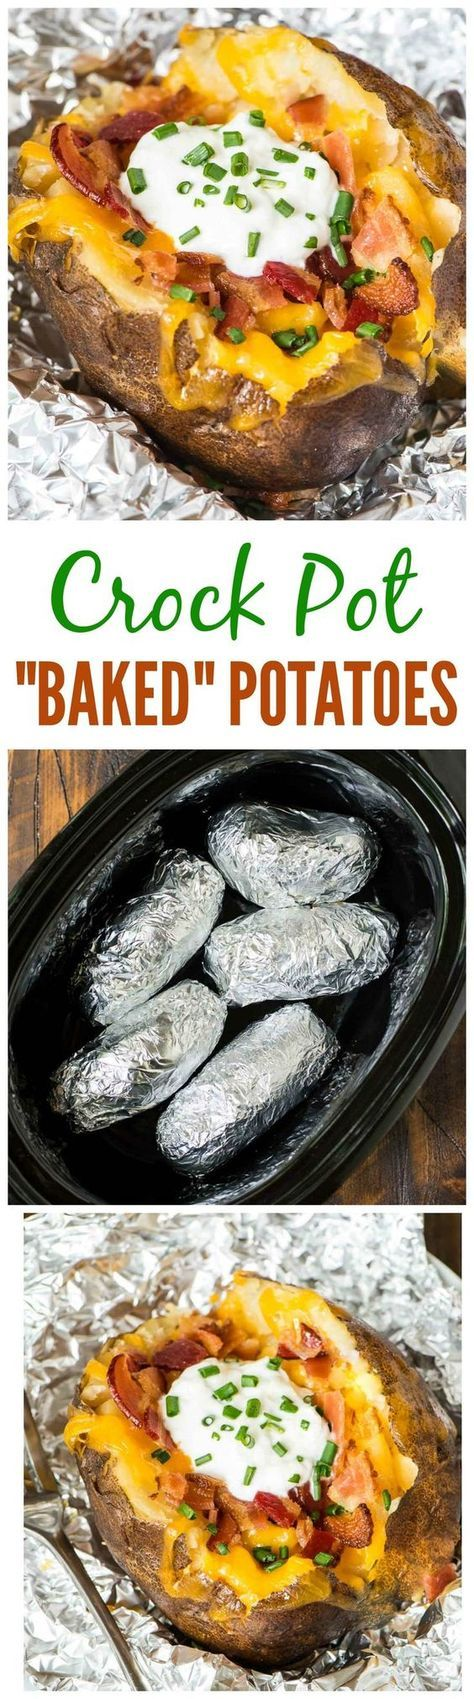 """Crock Pot Baked Potatoes recipe — the easiest way to """"bake"""" a potato is in your slow cooker! Easy method with no clean up. Great for weeknight dinners or to feed a crowd. Recipe at http://wellplated.com @wellplated"""